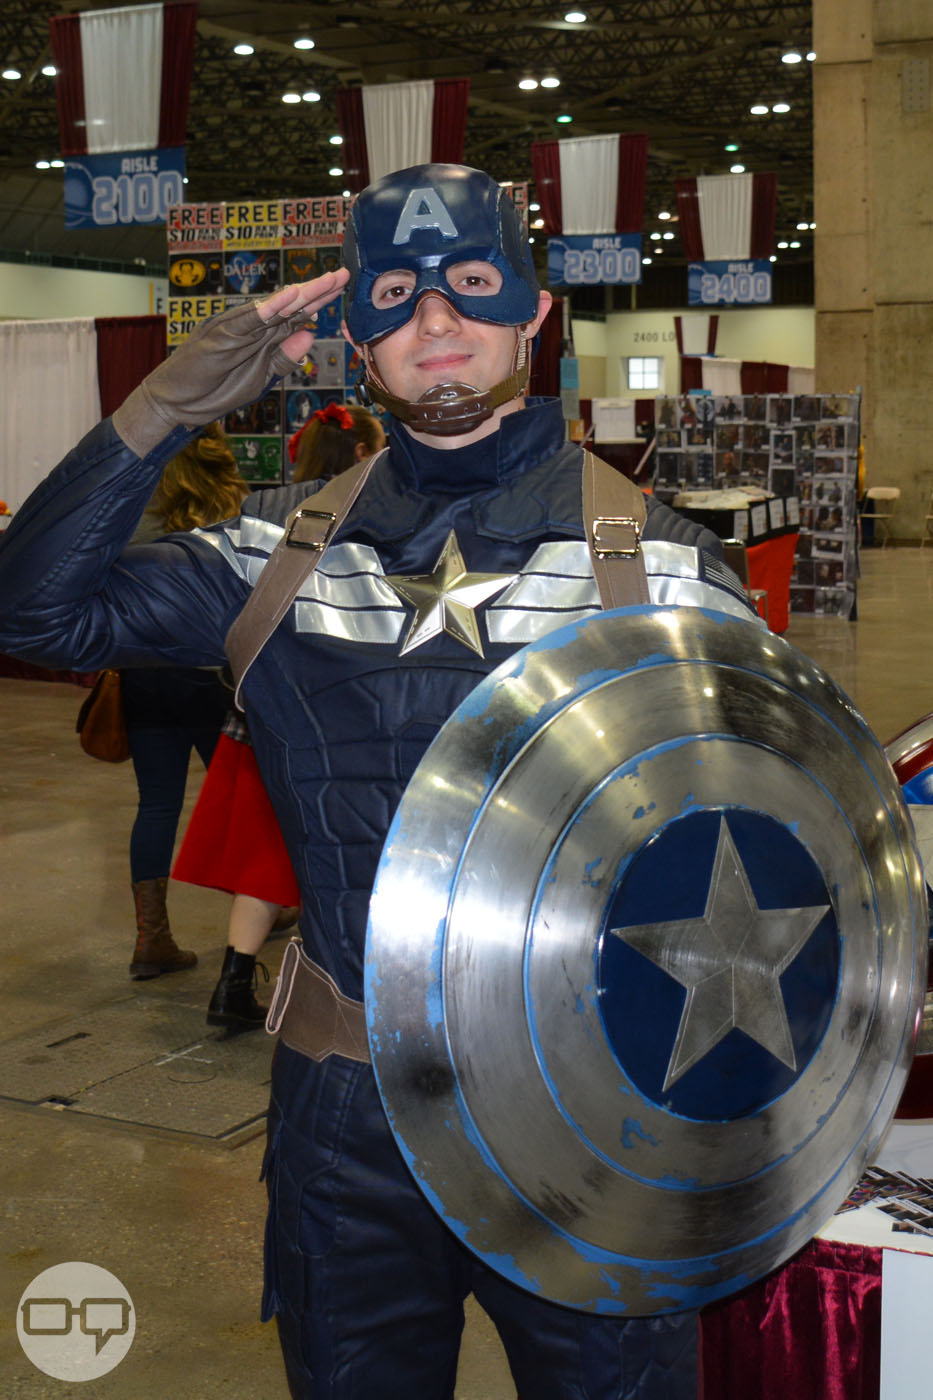 Planet-Comicon-2015-ProNerd-Cosplay-D4-6